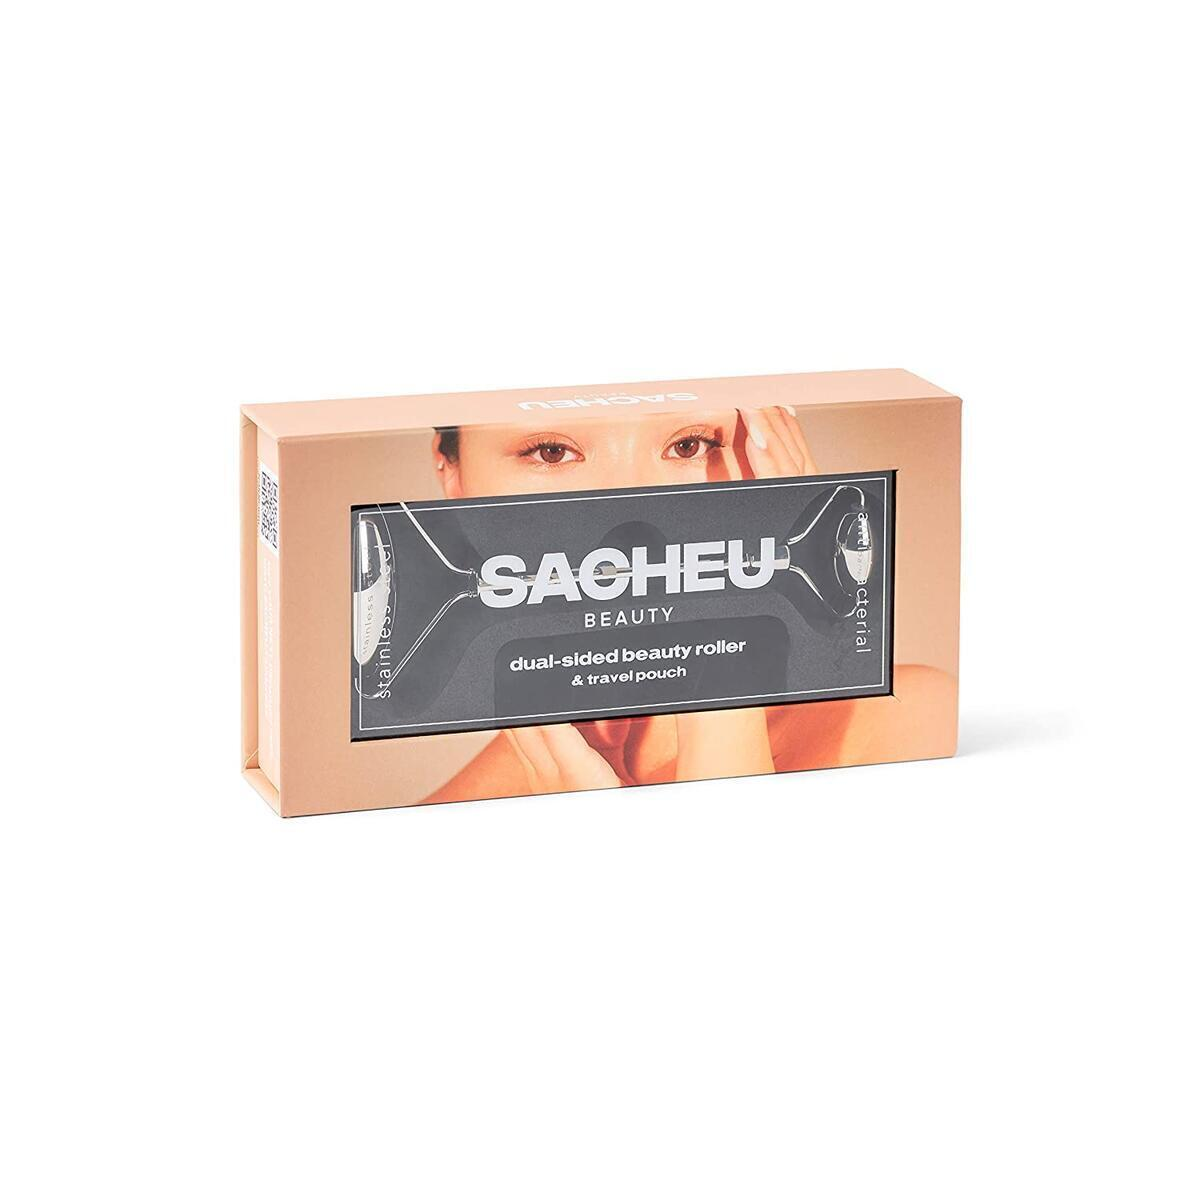 Stainless Steel Beauty Roller with Travel Pouch, Dual sided - By SACHEU